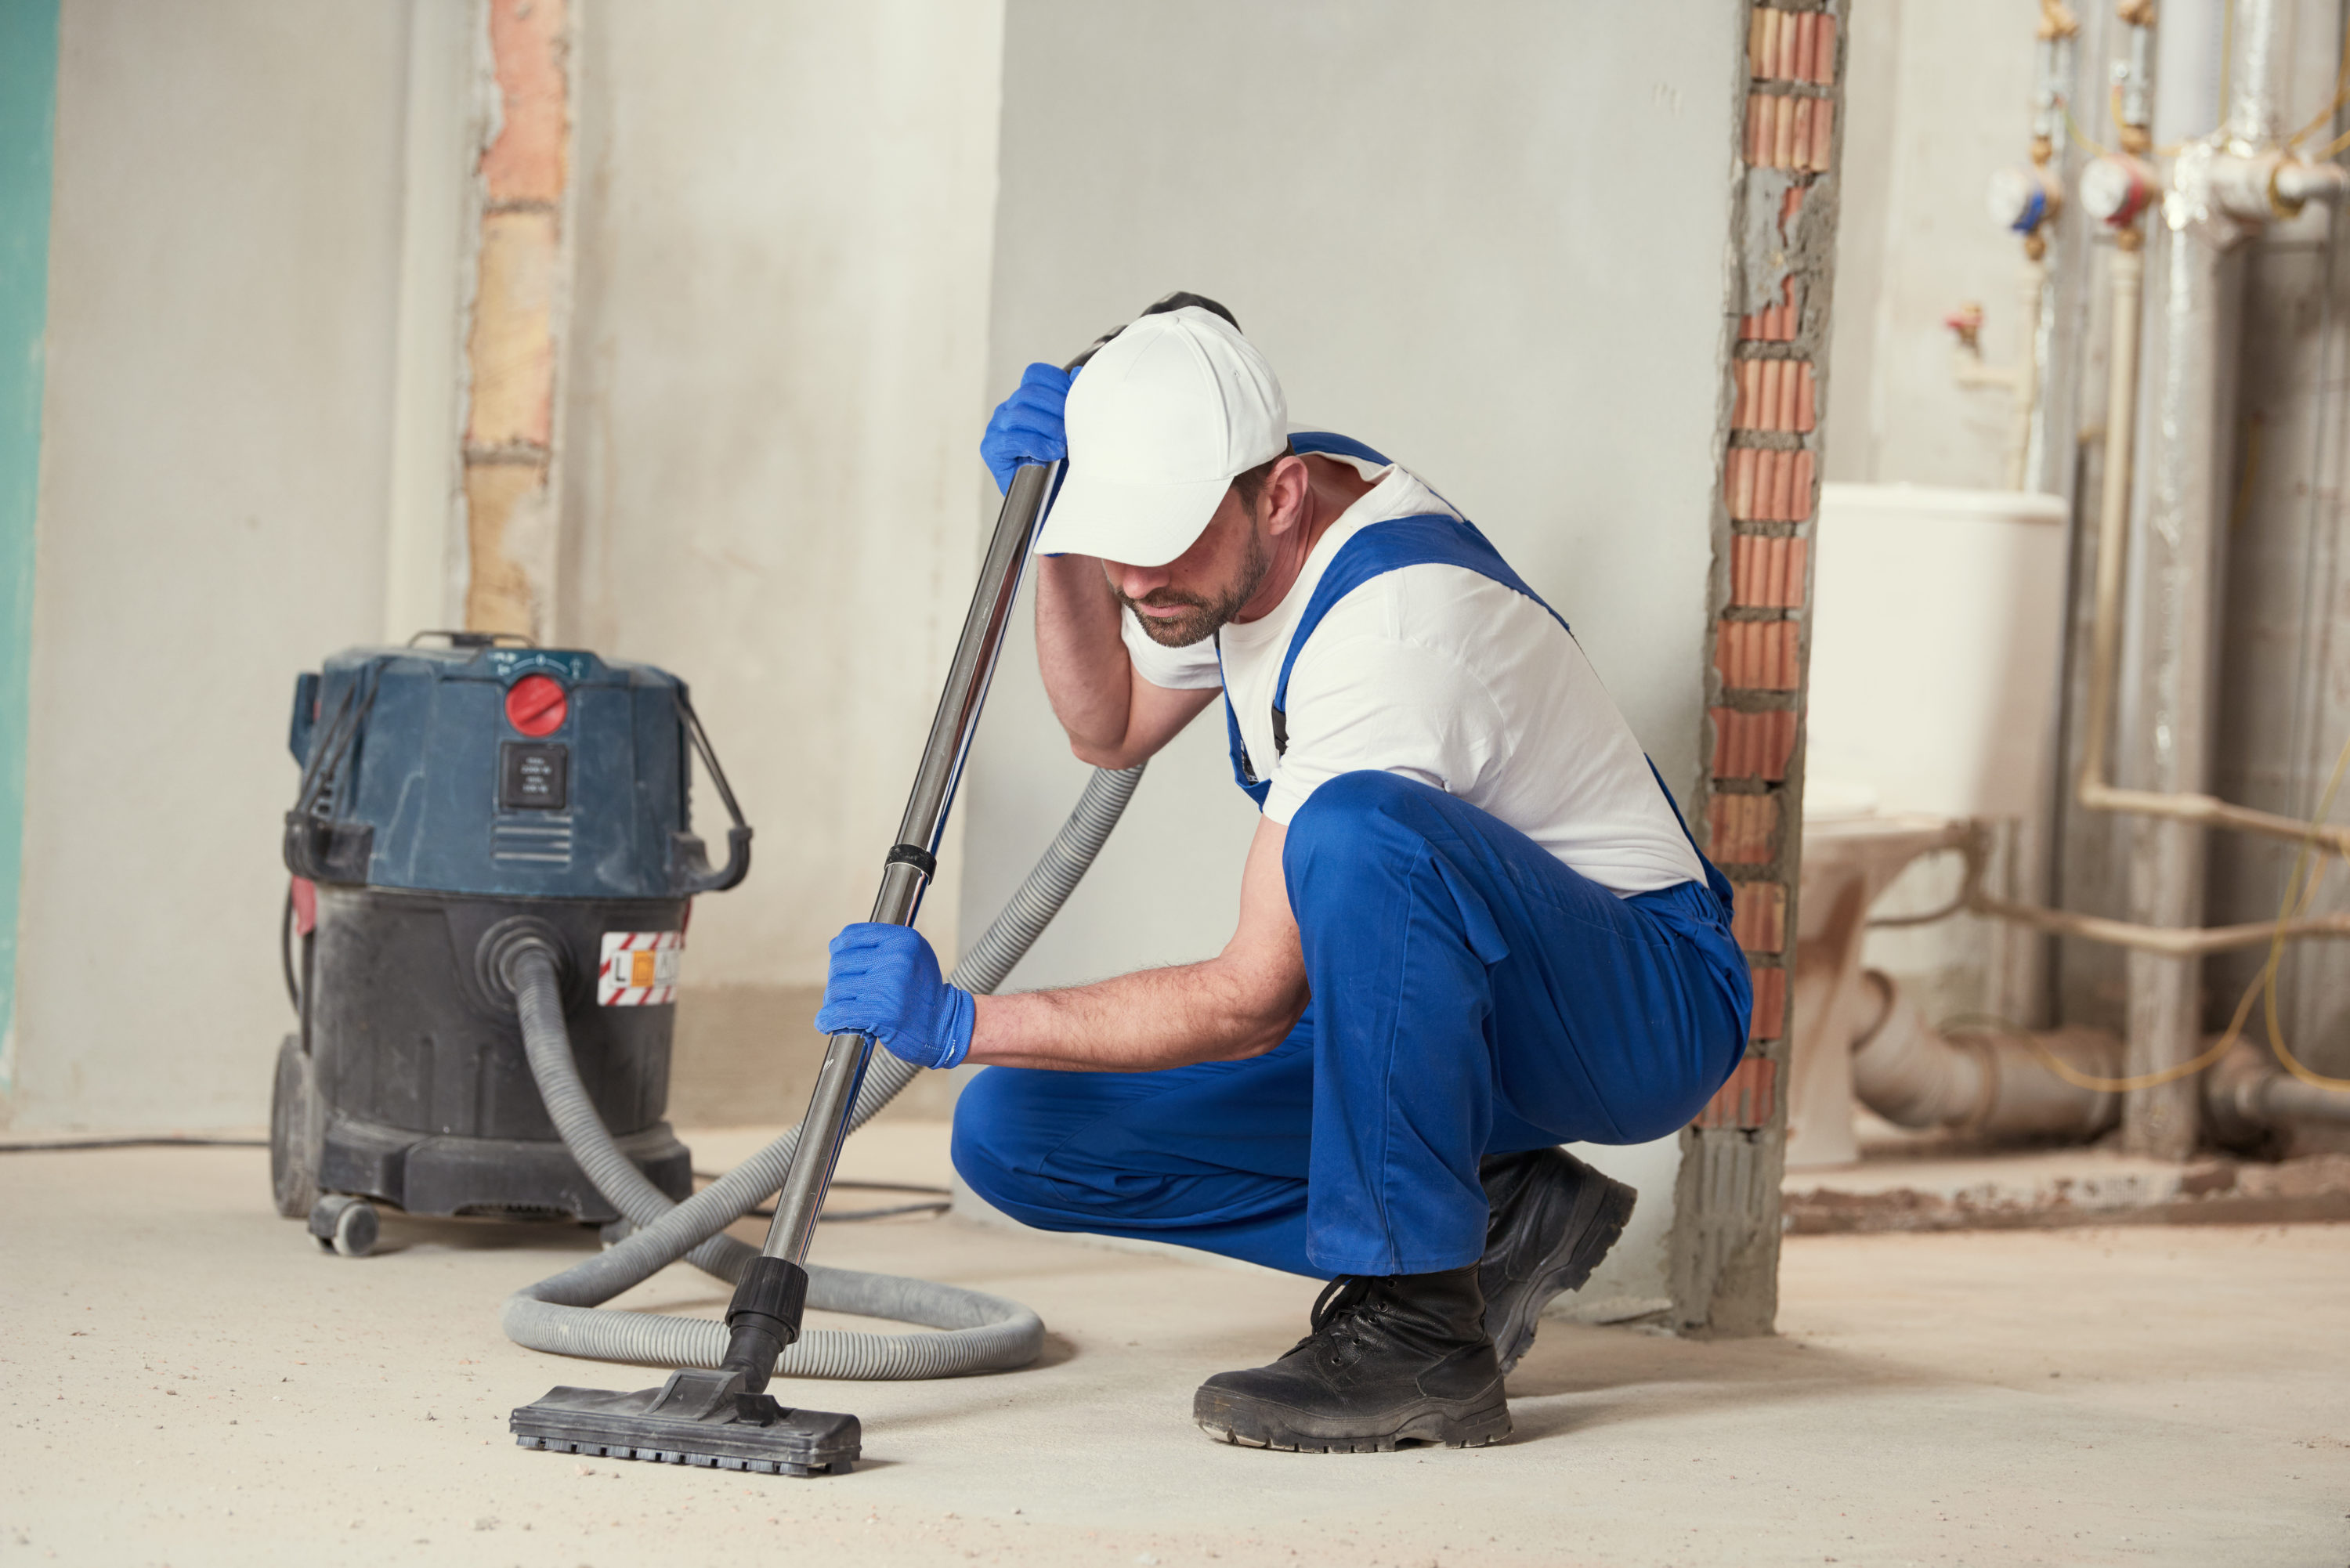 We provide a quality, reliability and friendly service. Maid to Order construction cleaning services - man vacuuming construction site.